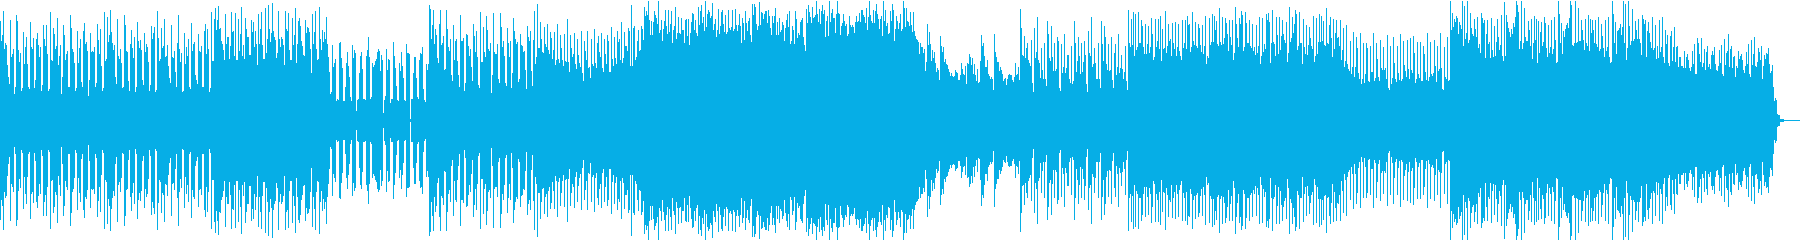 EDM with a warm atmosphere's reproduced waveform